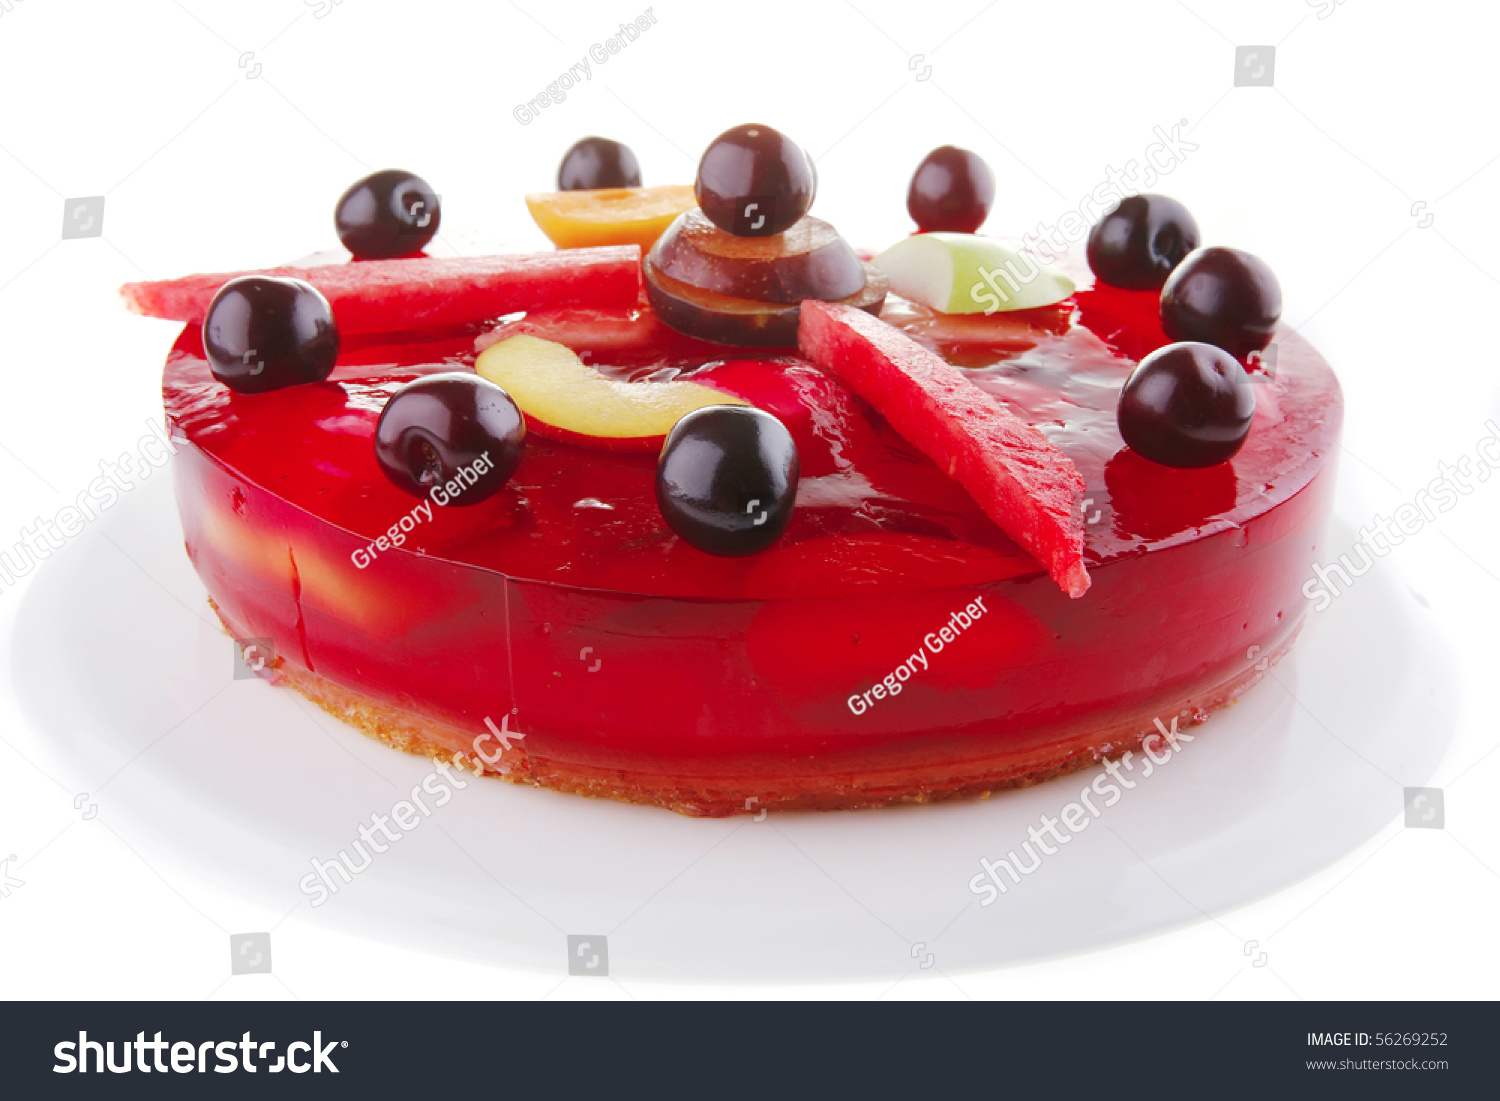 Red Jelly Cake Recipe: Cold Red Jelly Cake With Cherry And Watermelon Stock Photo